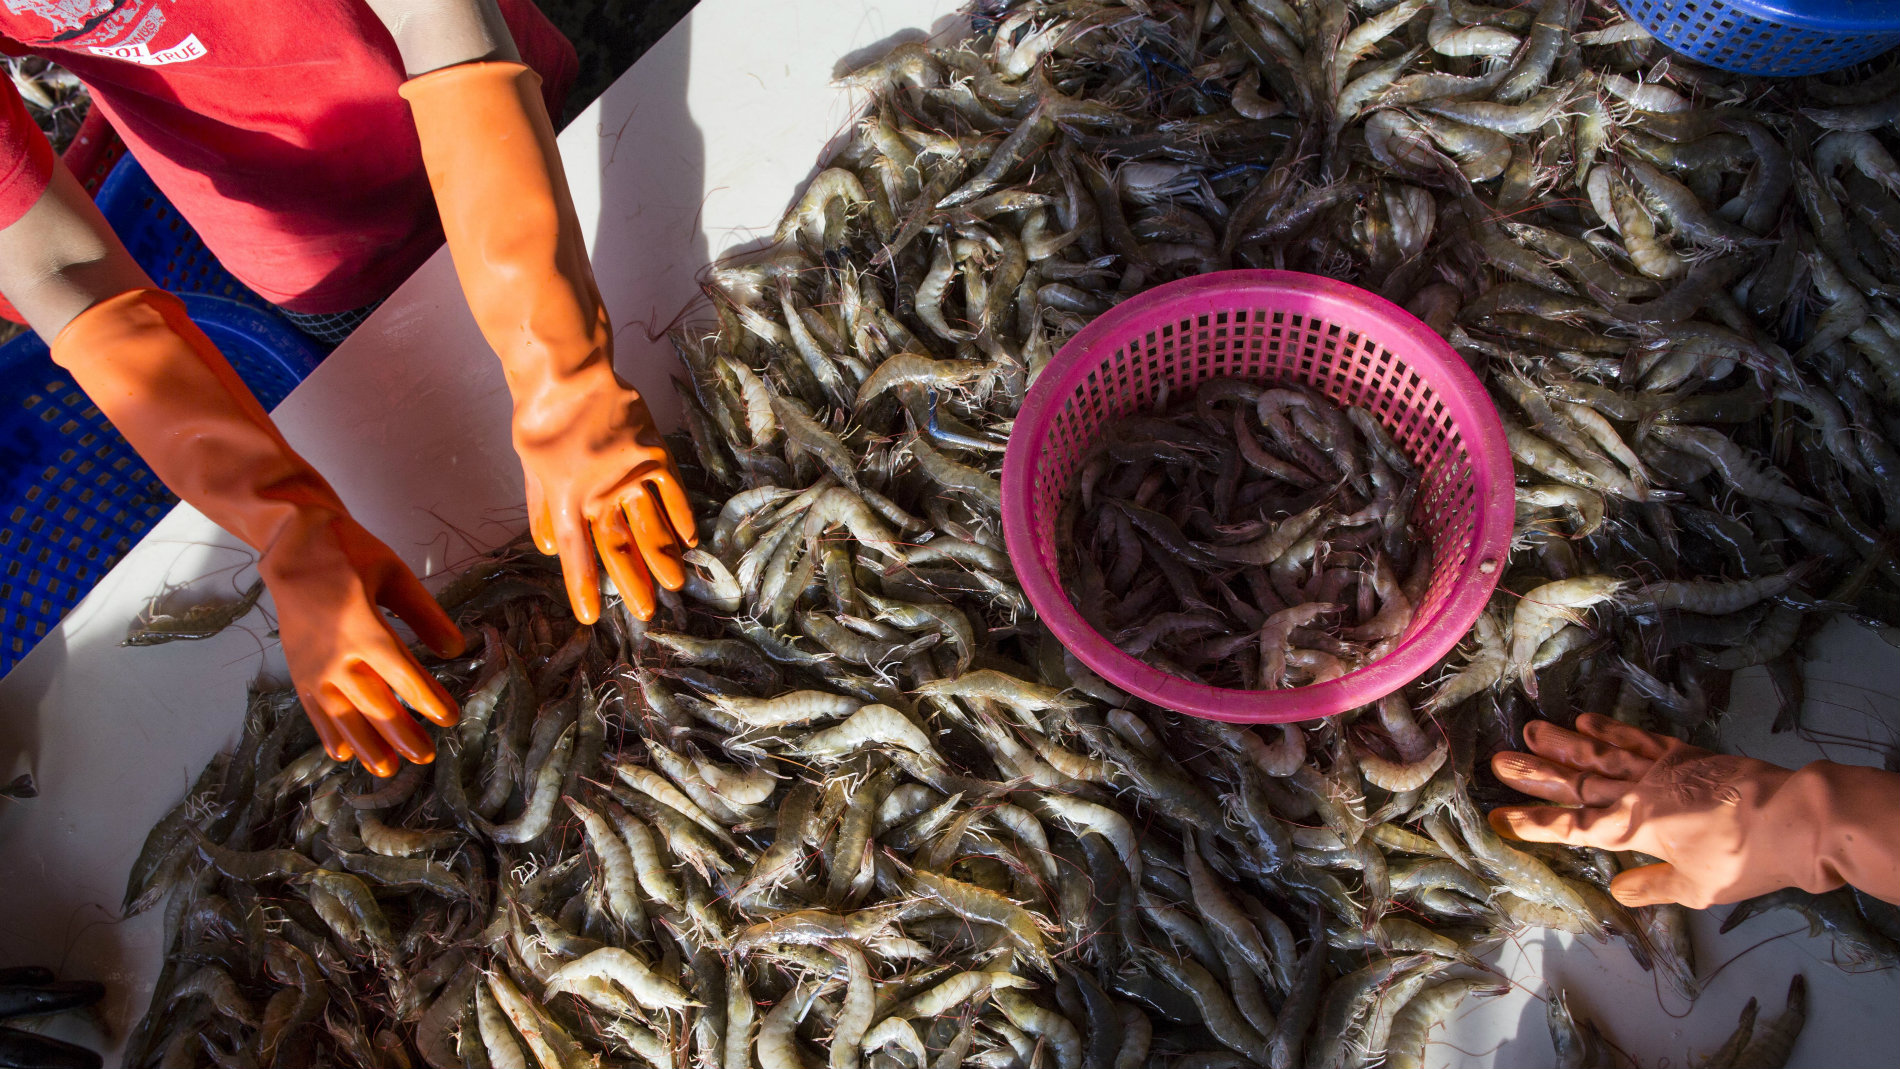 In this Wednesday, Sept. 30, 2015 photo, female workers sort shrimp at a seafood market in Mahachai, Thailand.